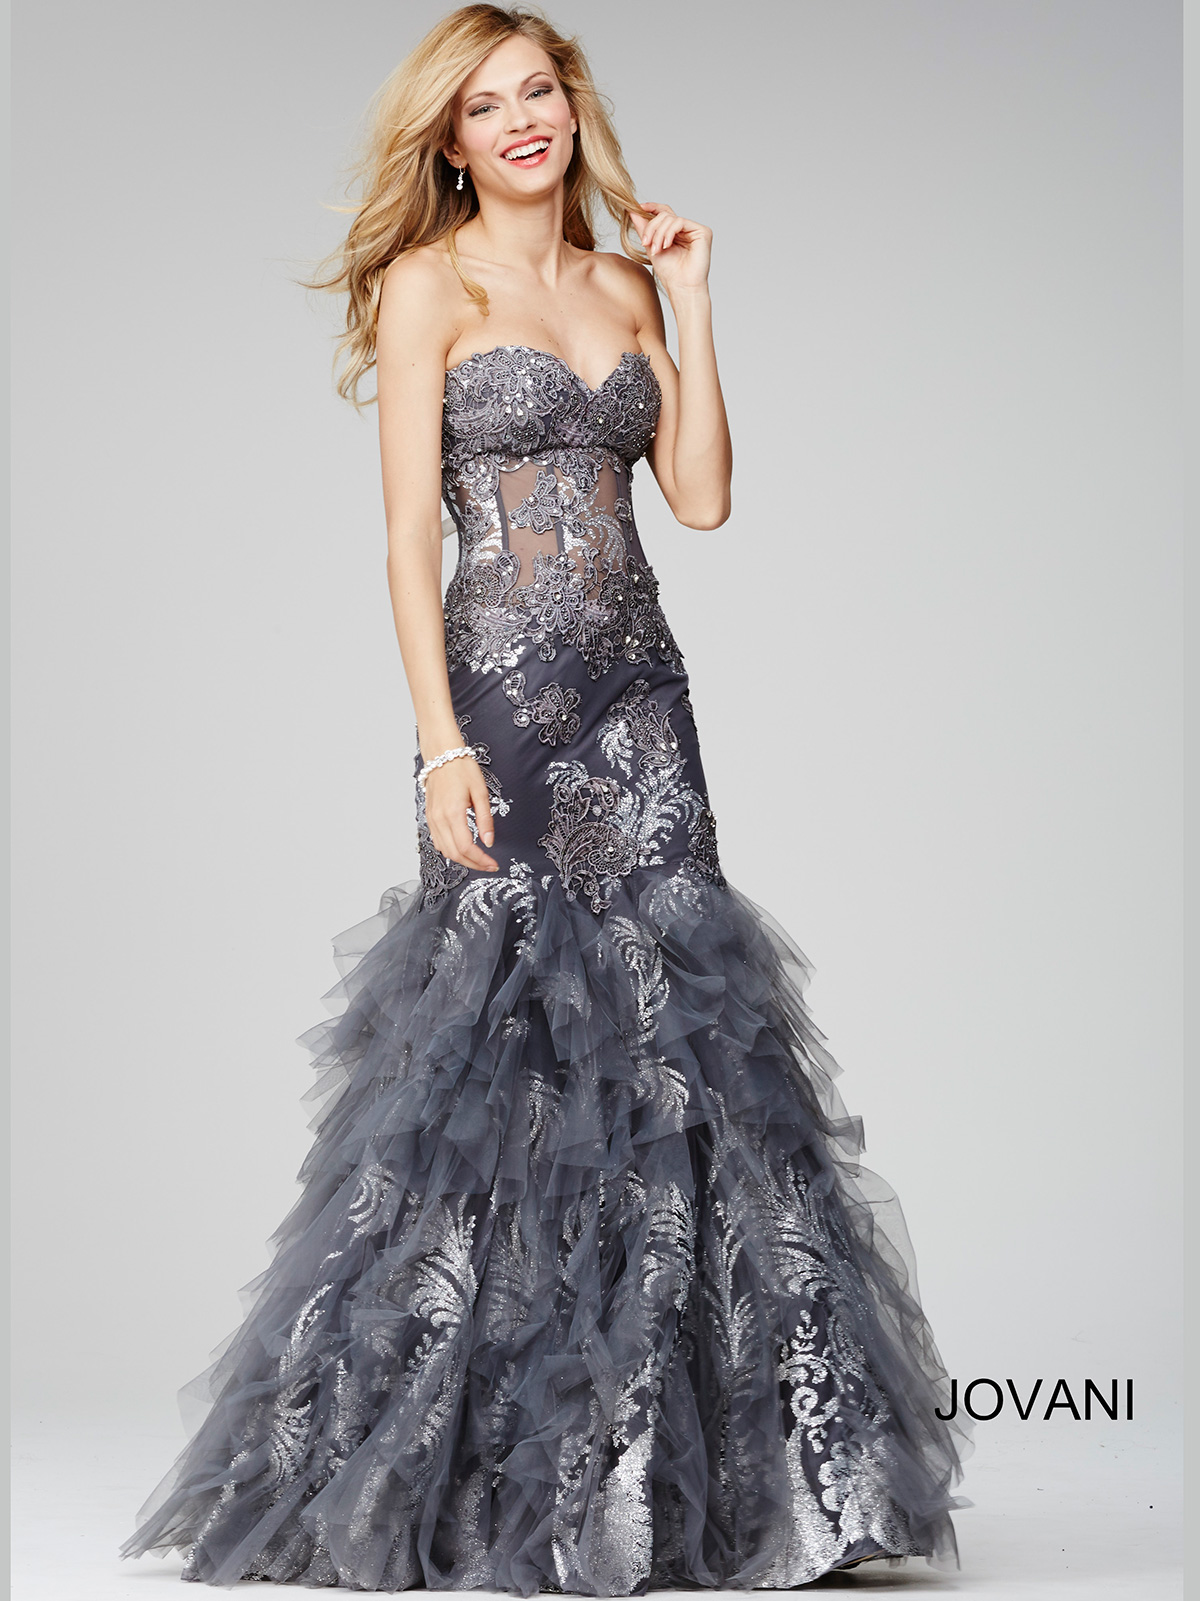 Jovani 88893 Sweetheart Mermaid Pageant Dress|PageantDesigns.com